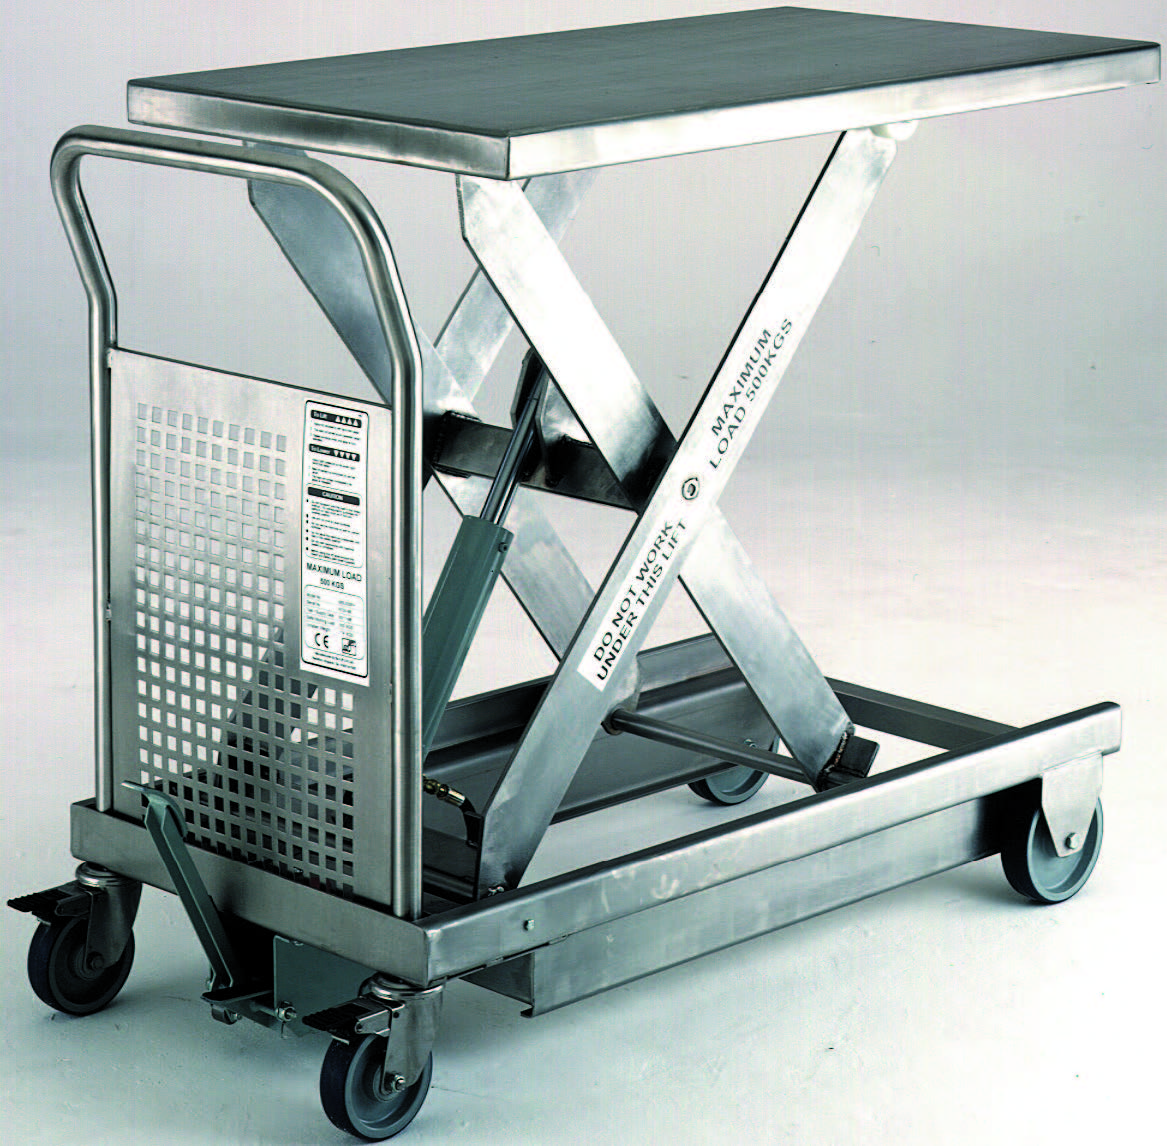 Stainless Steel Forklift : Stainless steel mobile lift tables industrial products